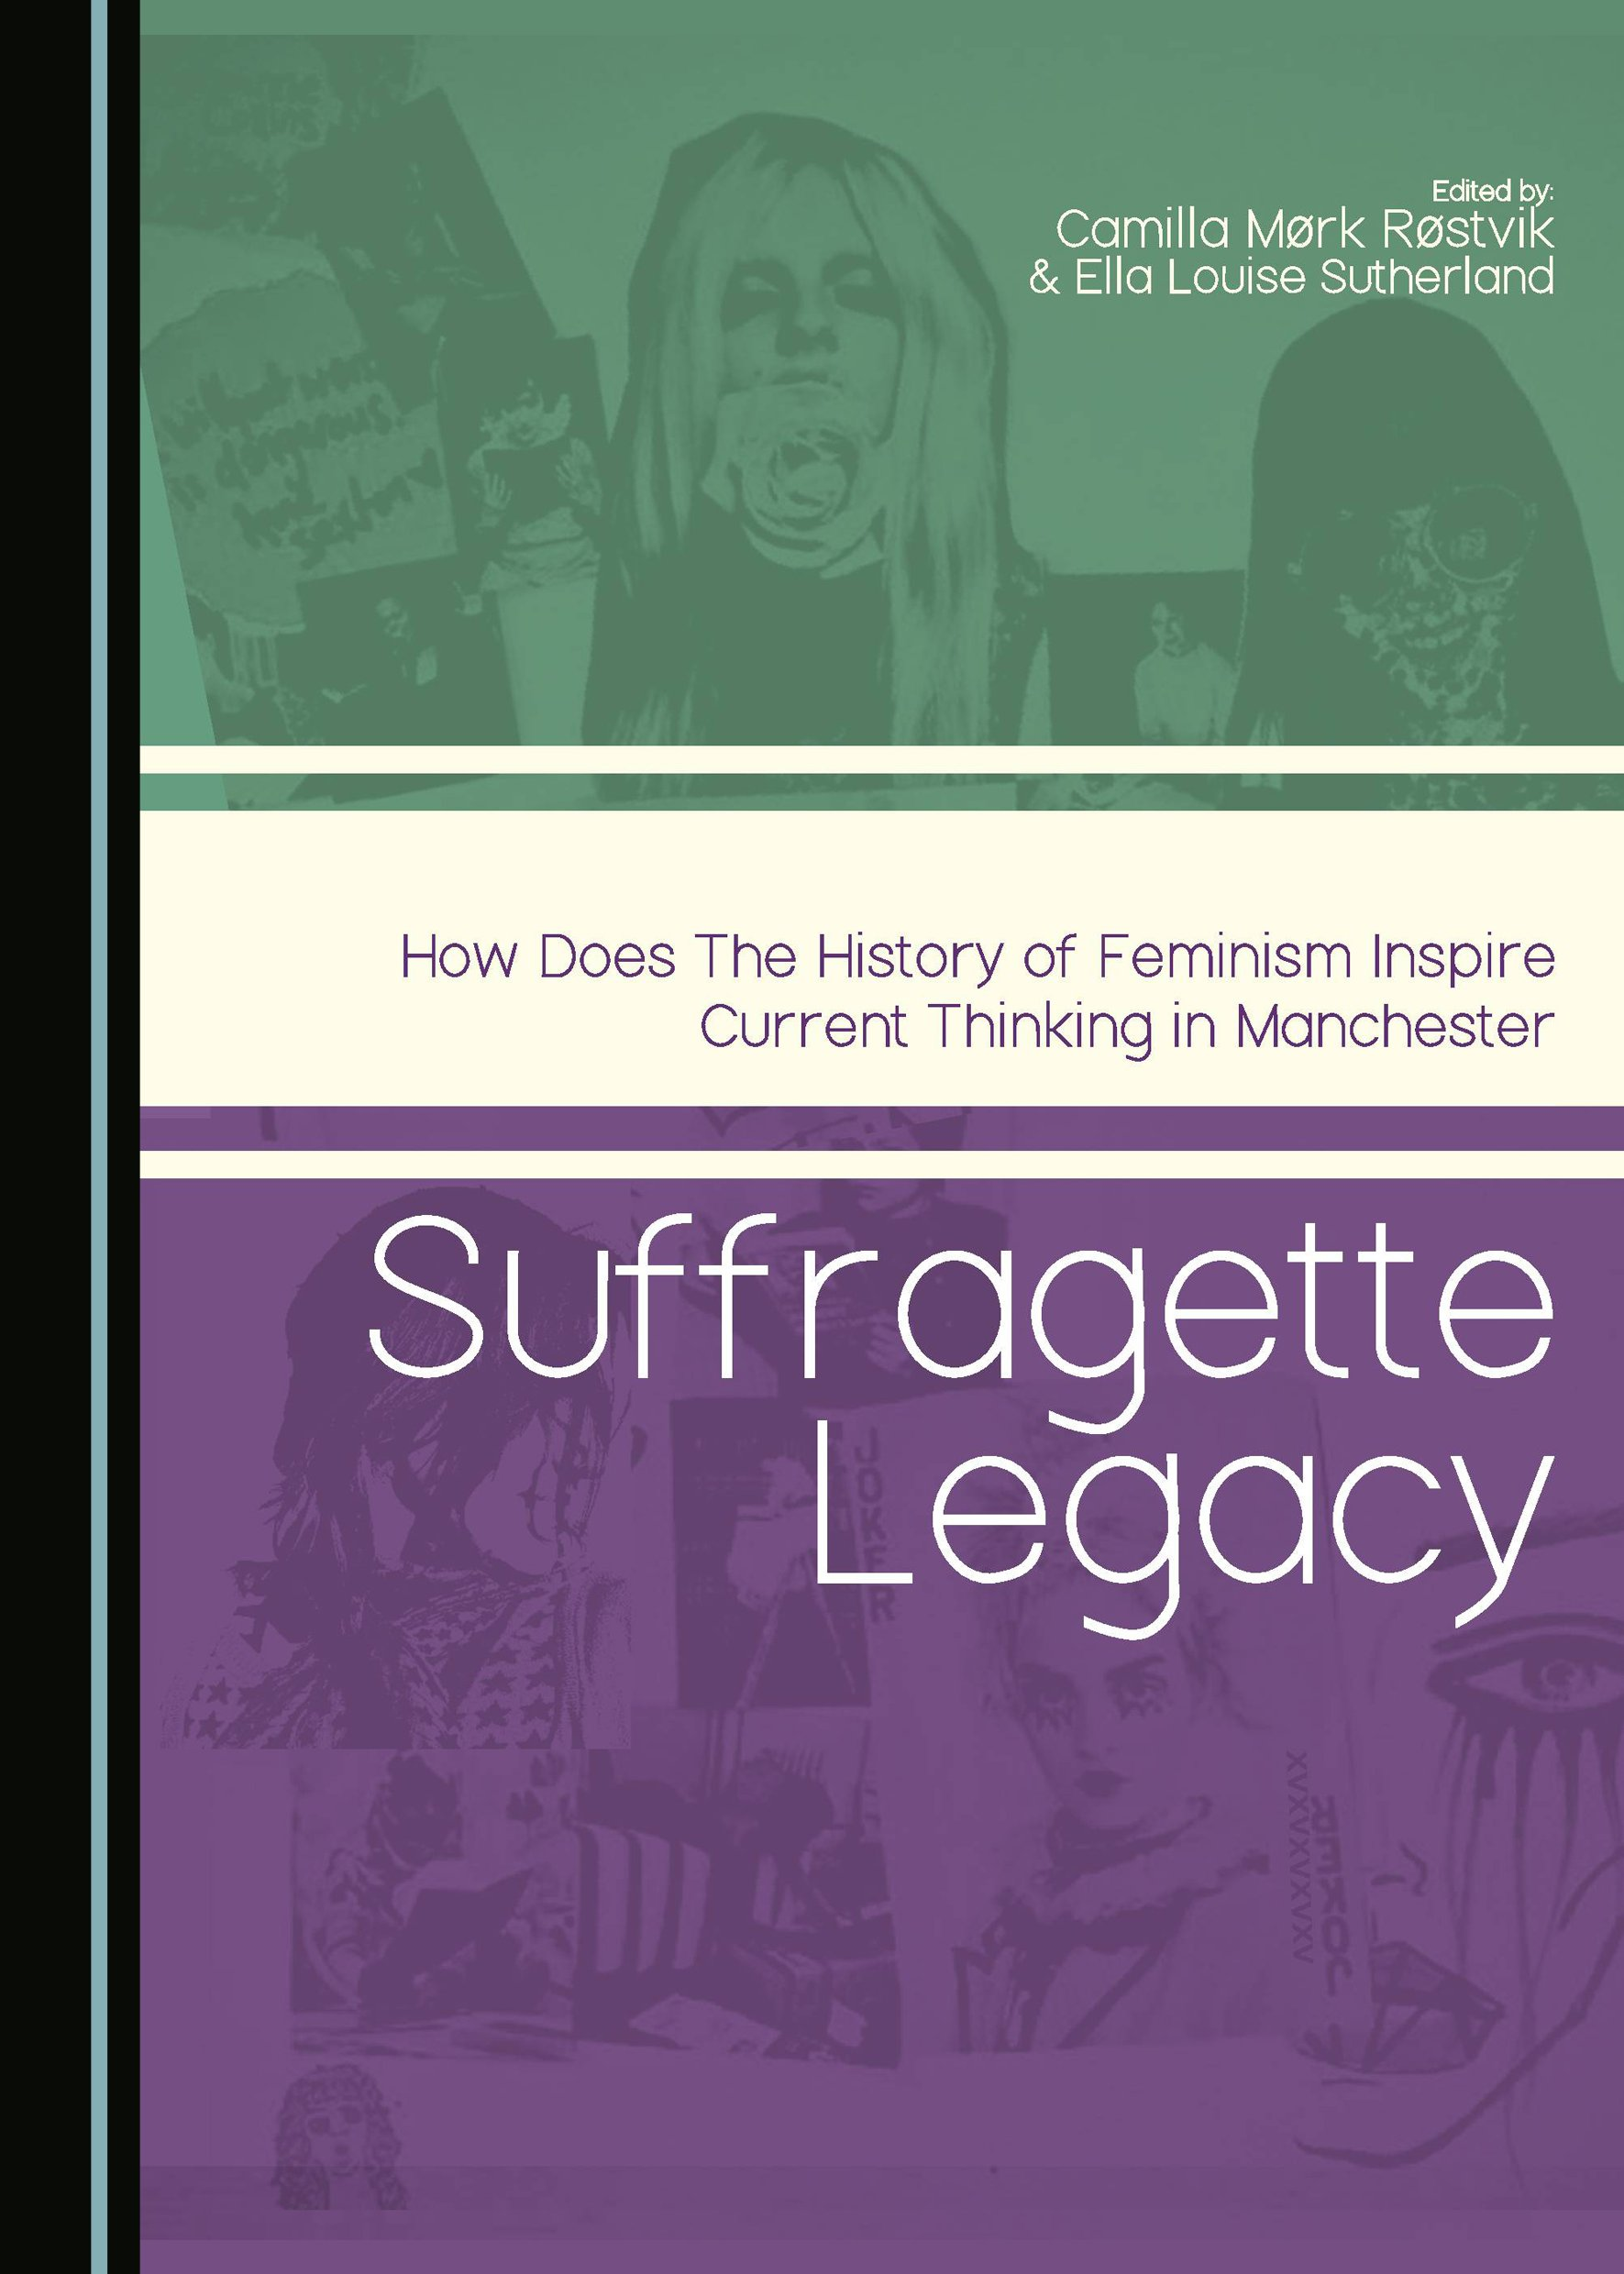 Suffragette Legacy: How does the History of Feminism Inspire Current Thinking in Manchester